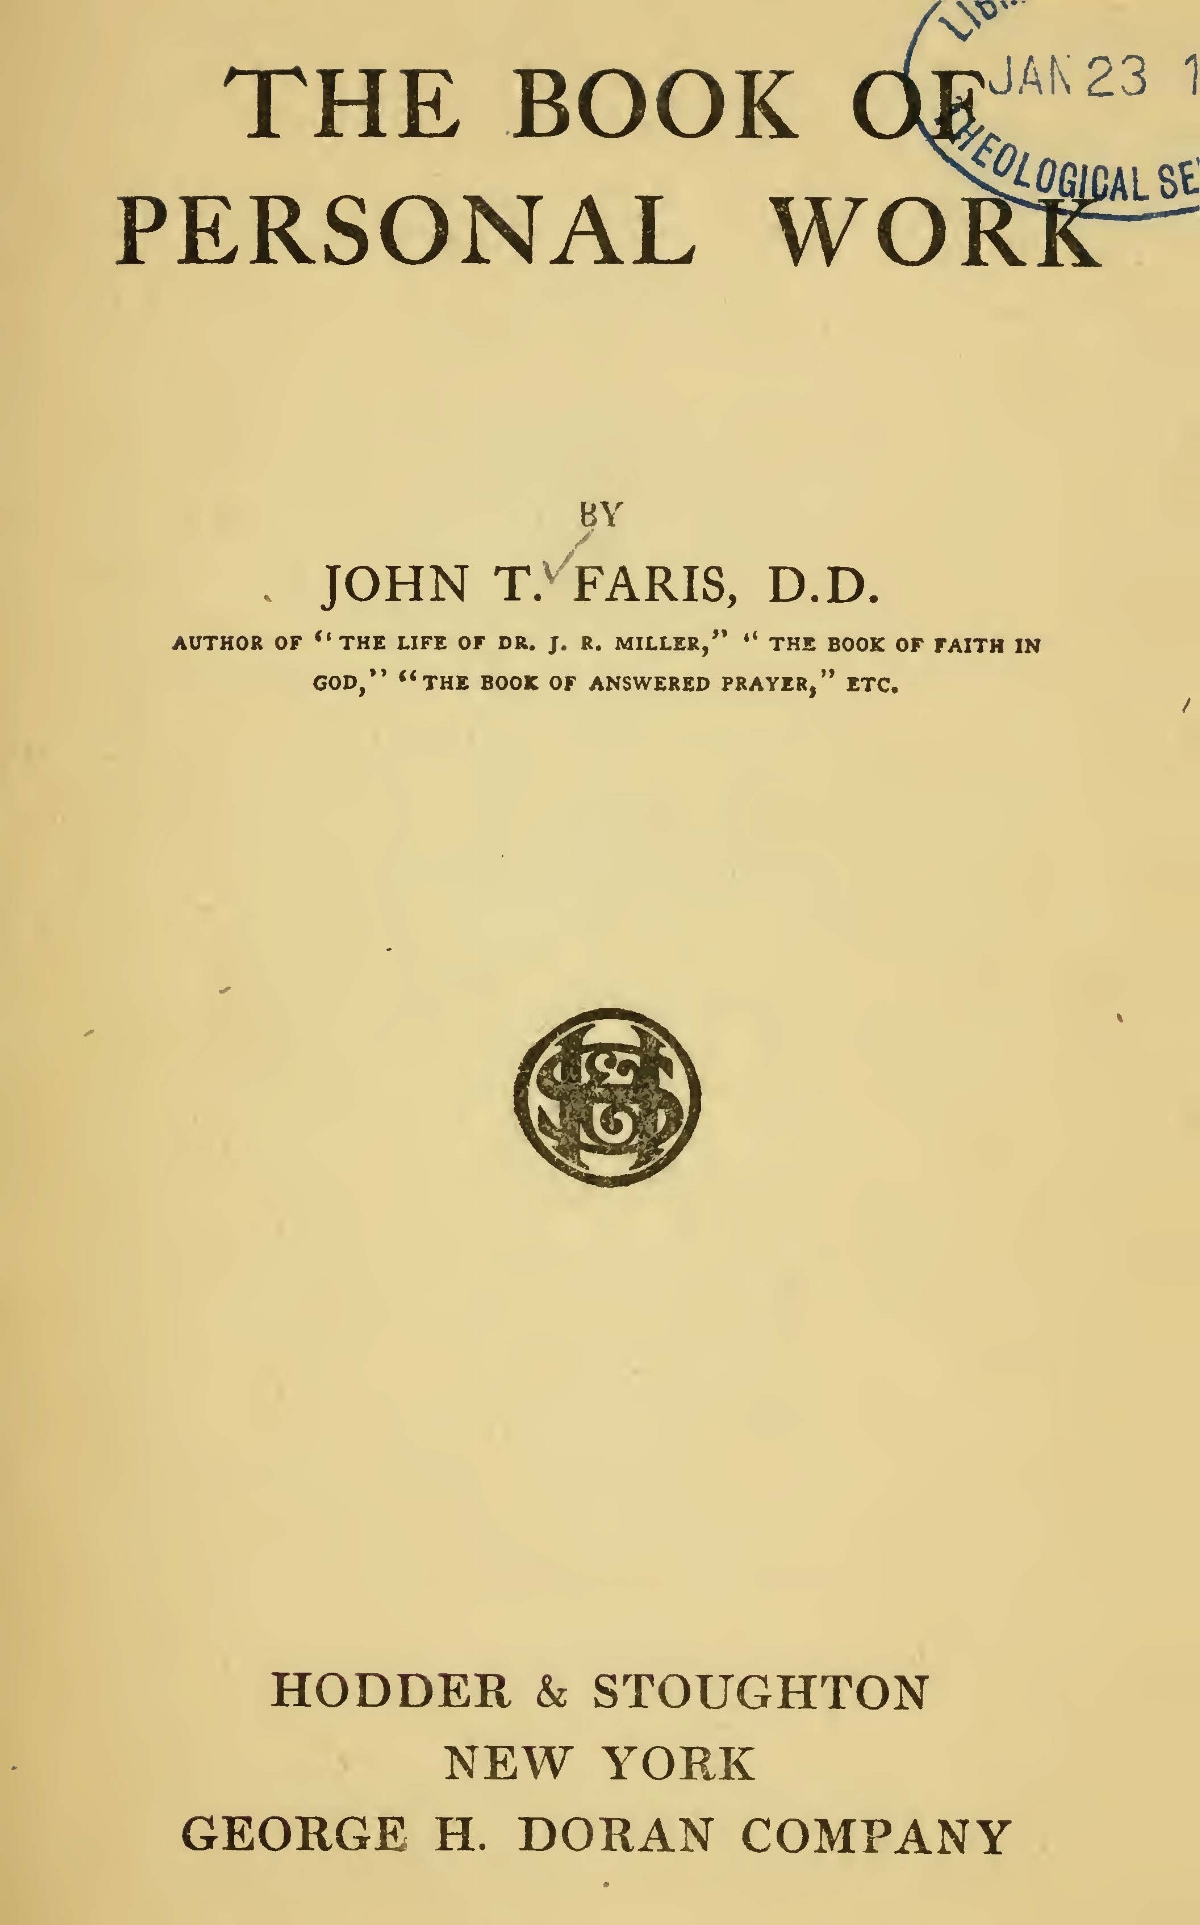 Faris, John Thomson, The Book of Personal Work Title Page.jpg